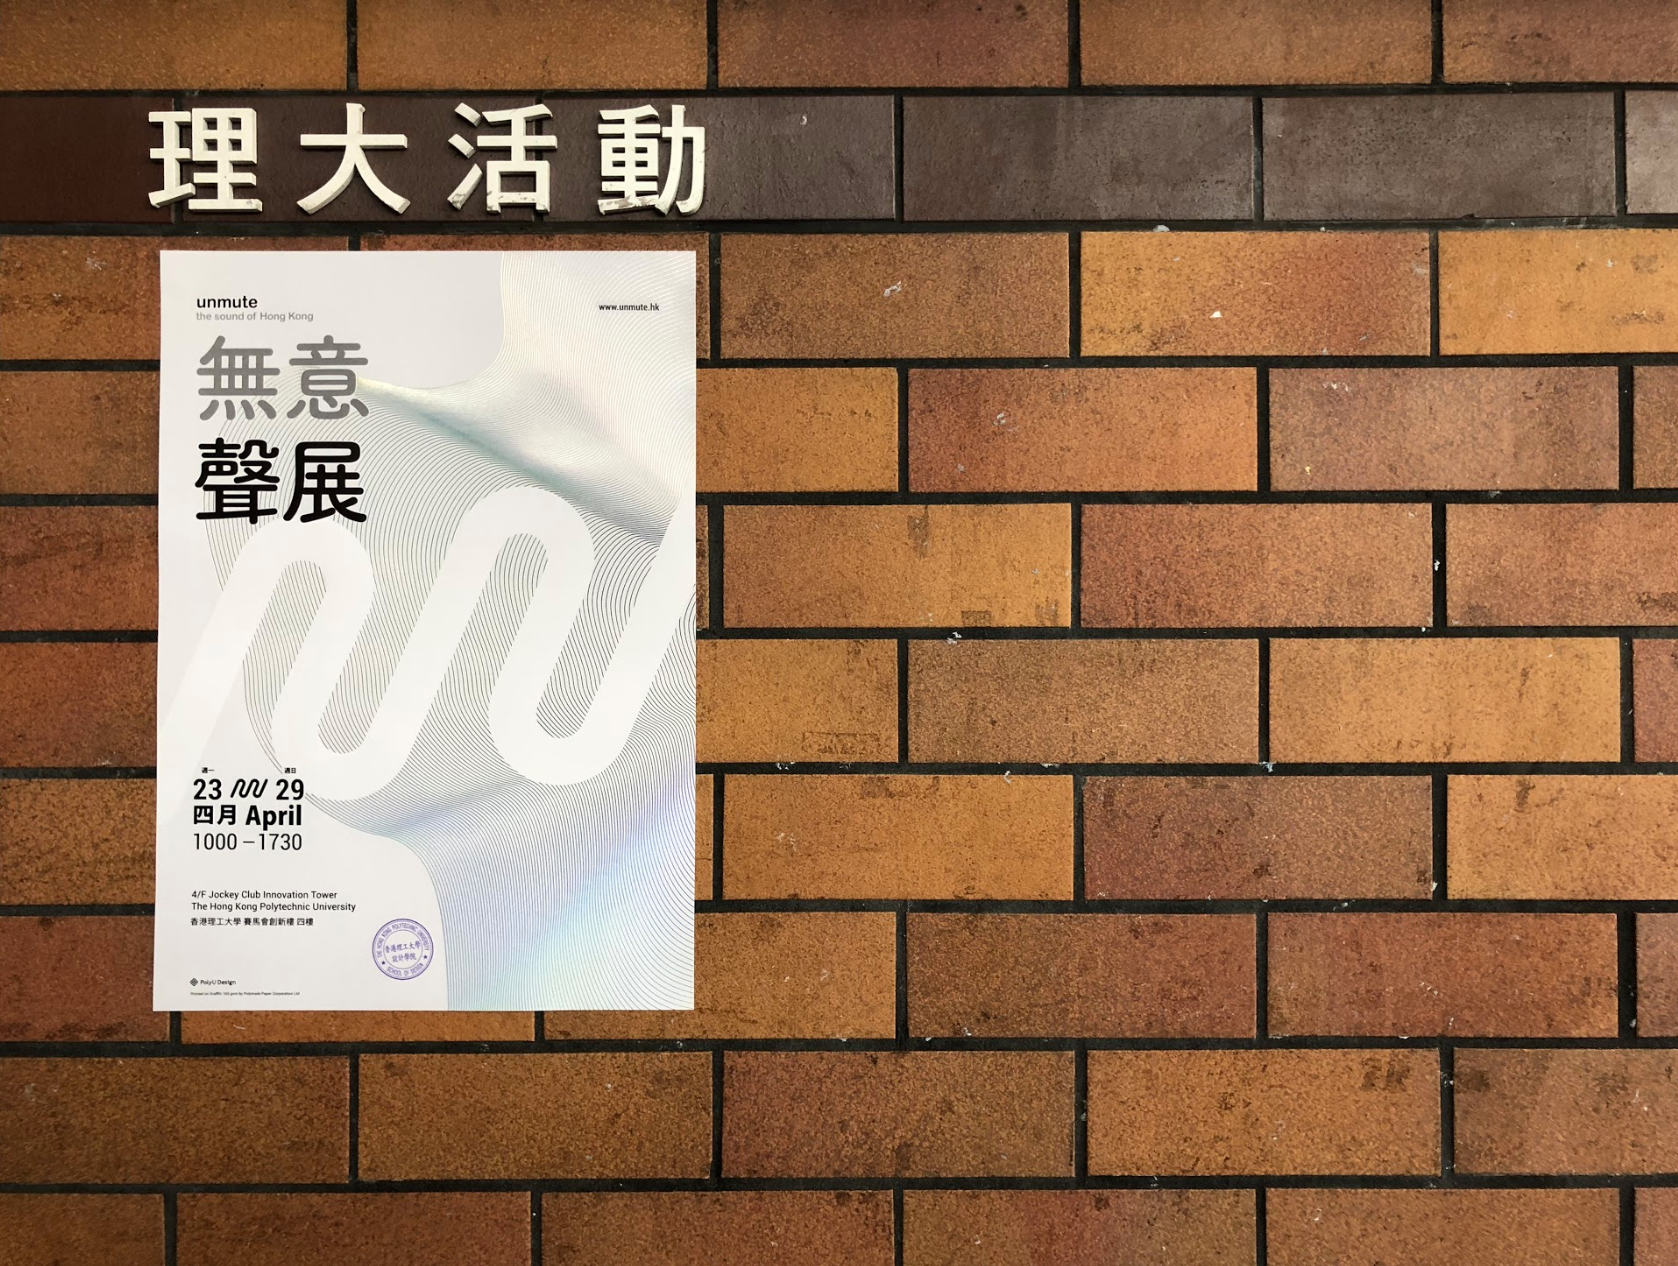 ▴ Putting up posters on the campus